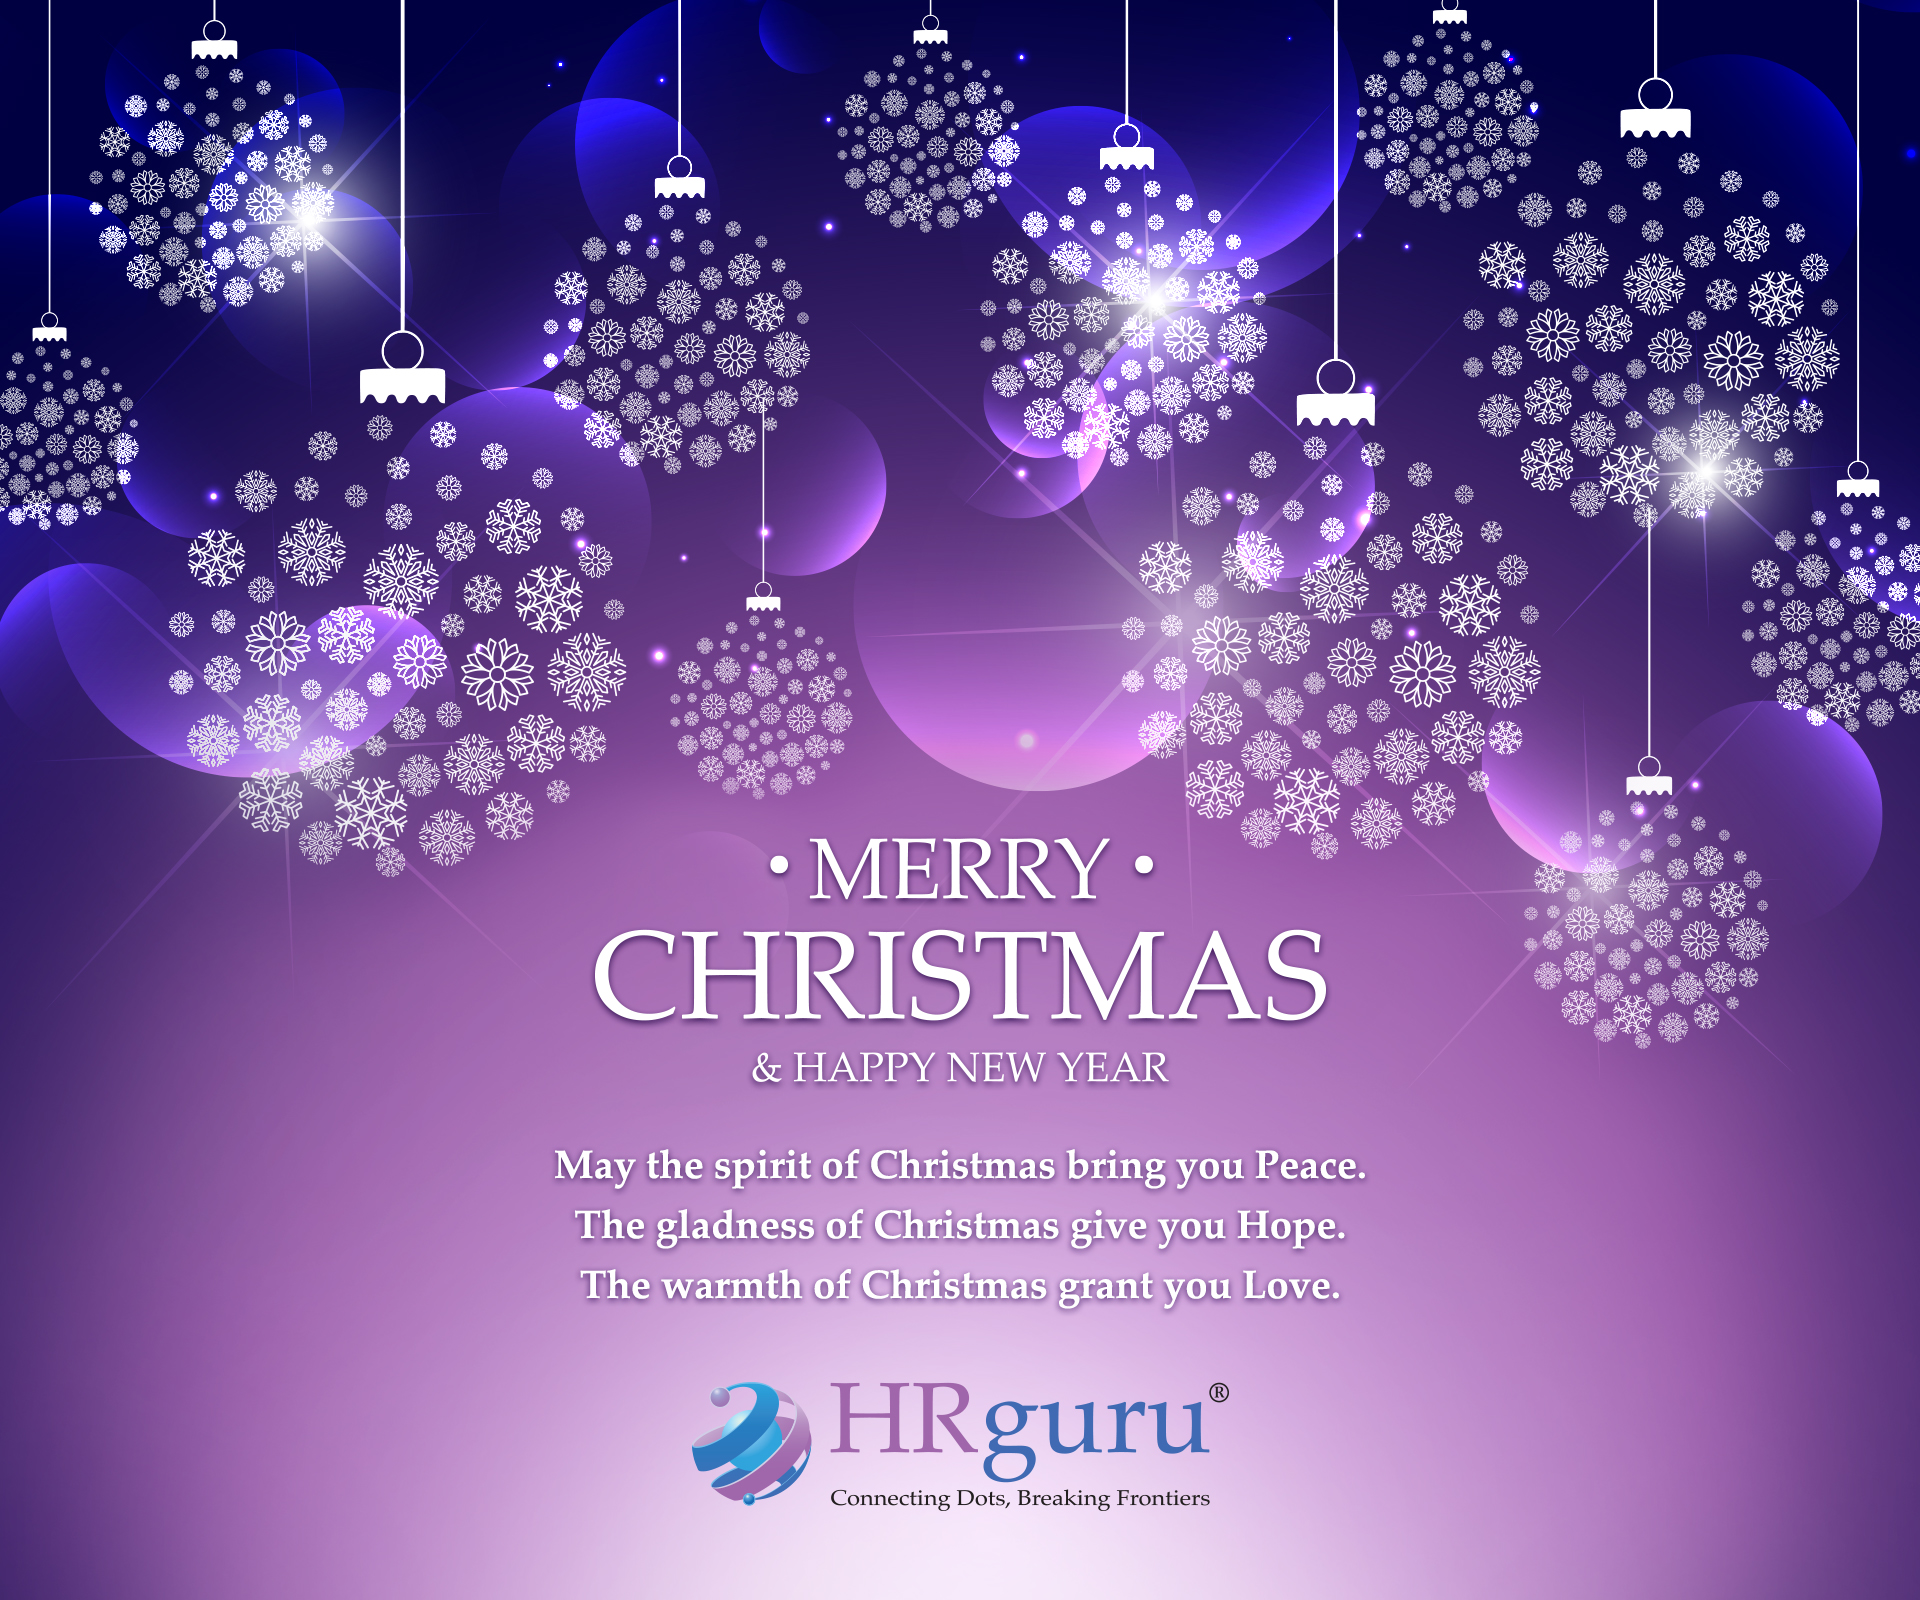 Merry Christmas And Happy New Year from HR Guru